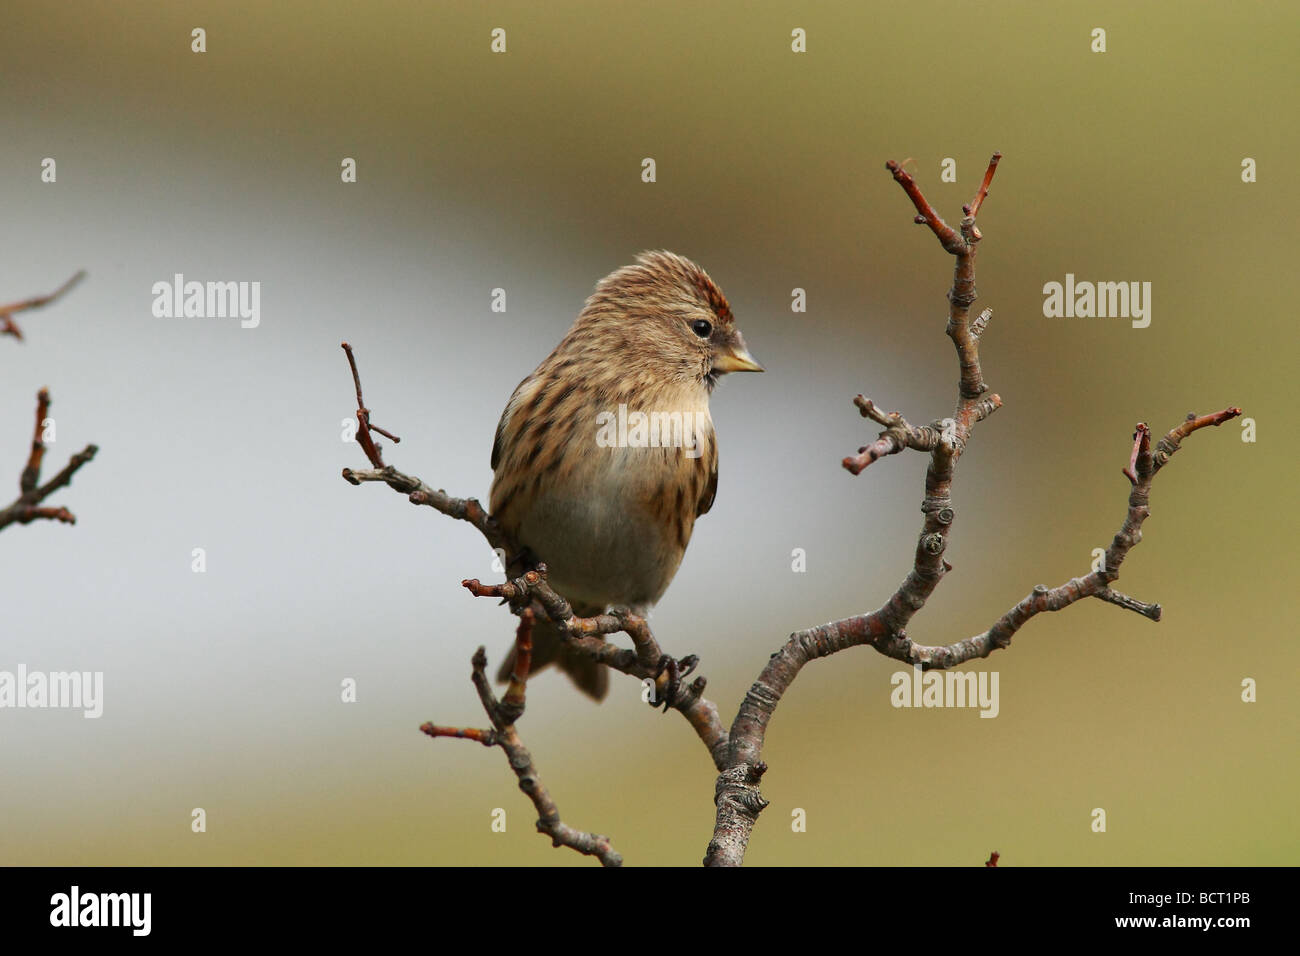 The Redpolls are a group of small passerine birds in the finch family Fringillidae Carduelis flammea Stock Photo